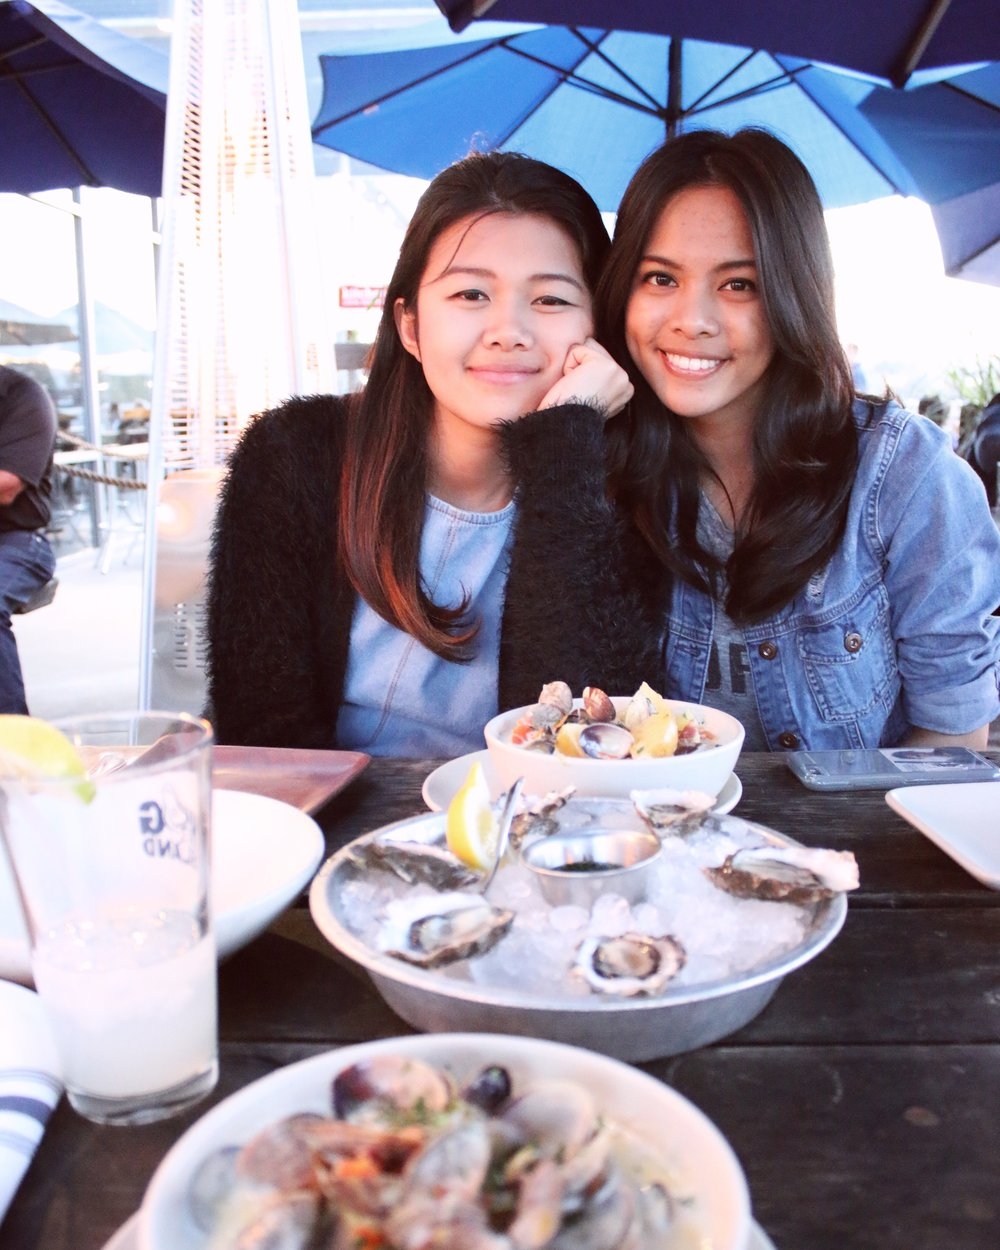 sonoma-wine-county-napa-valley-hogg-island-oysters-2